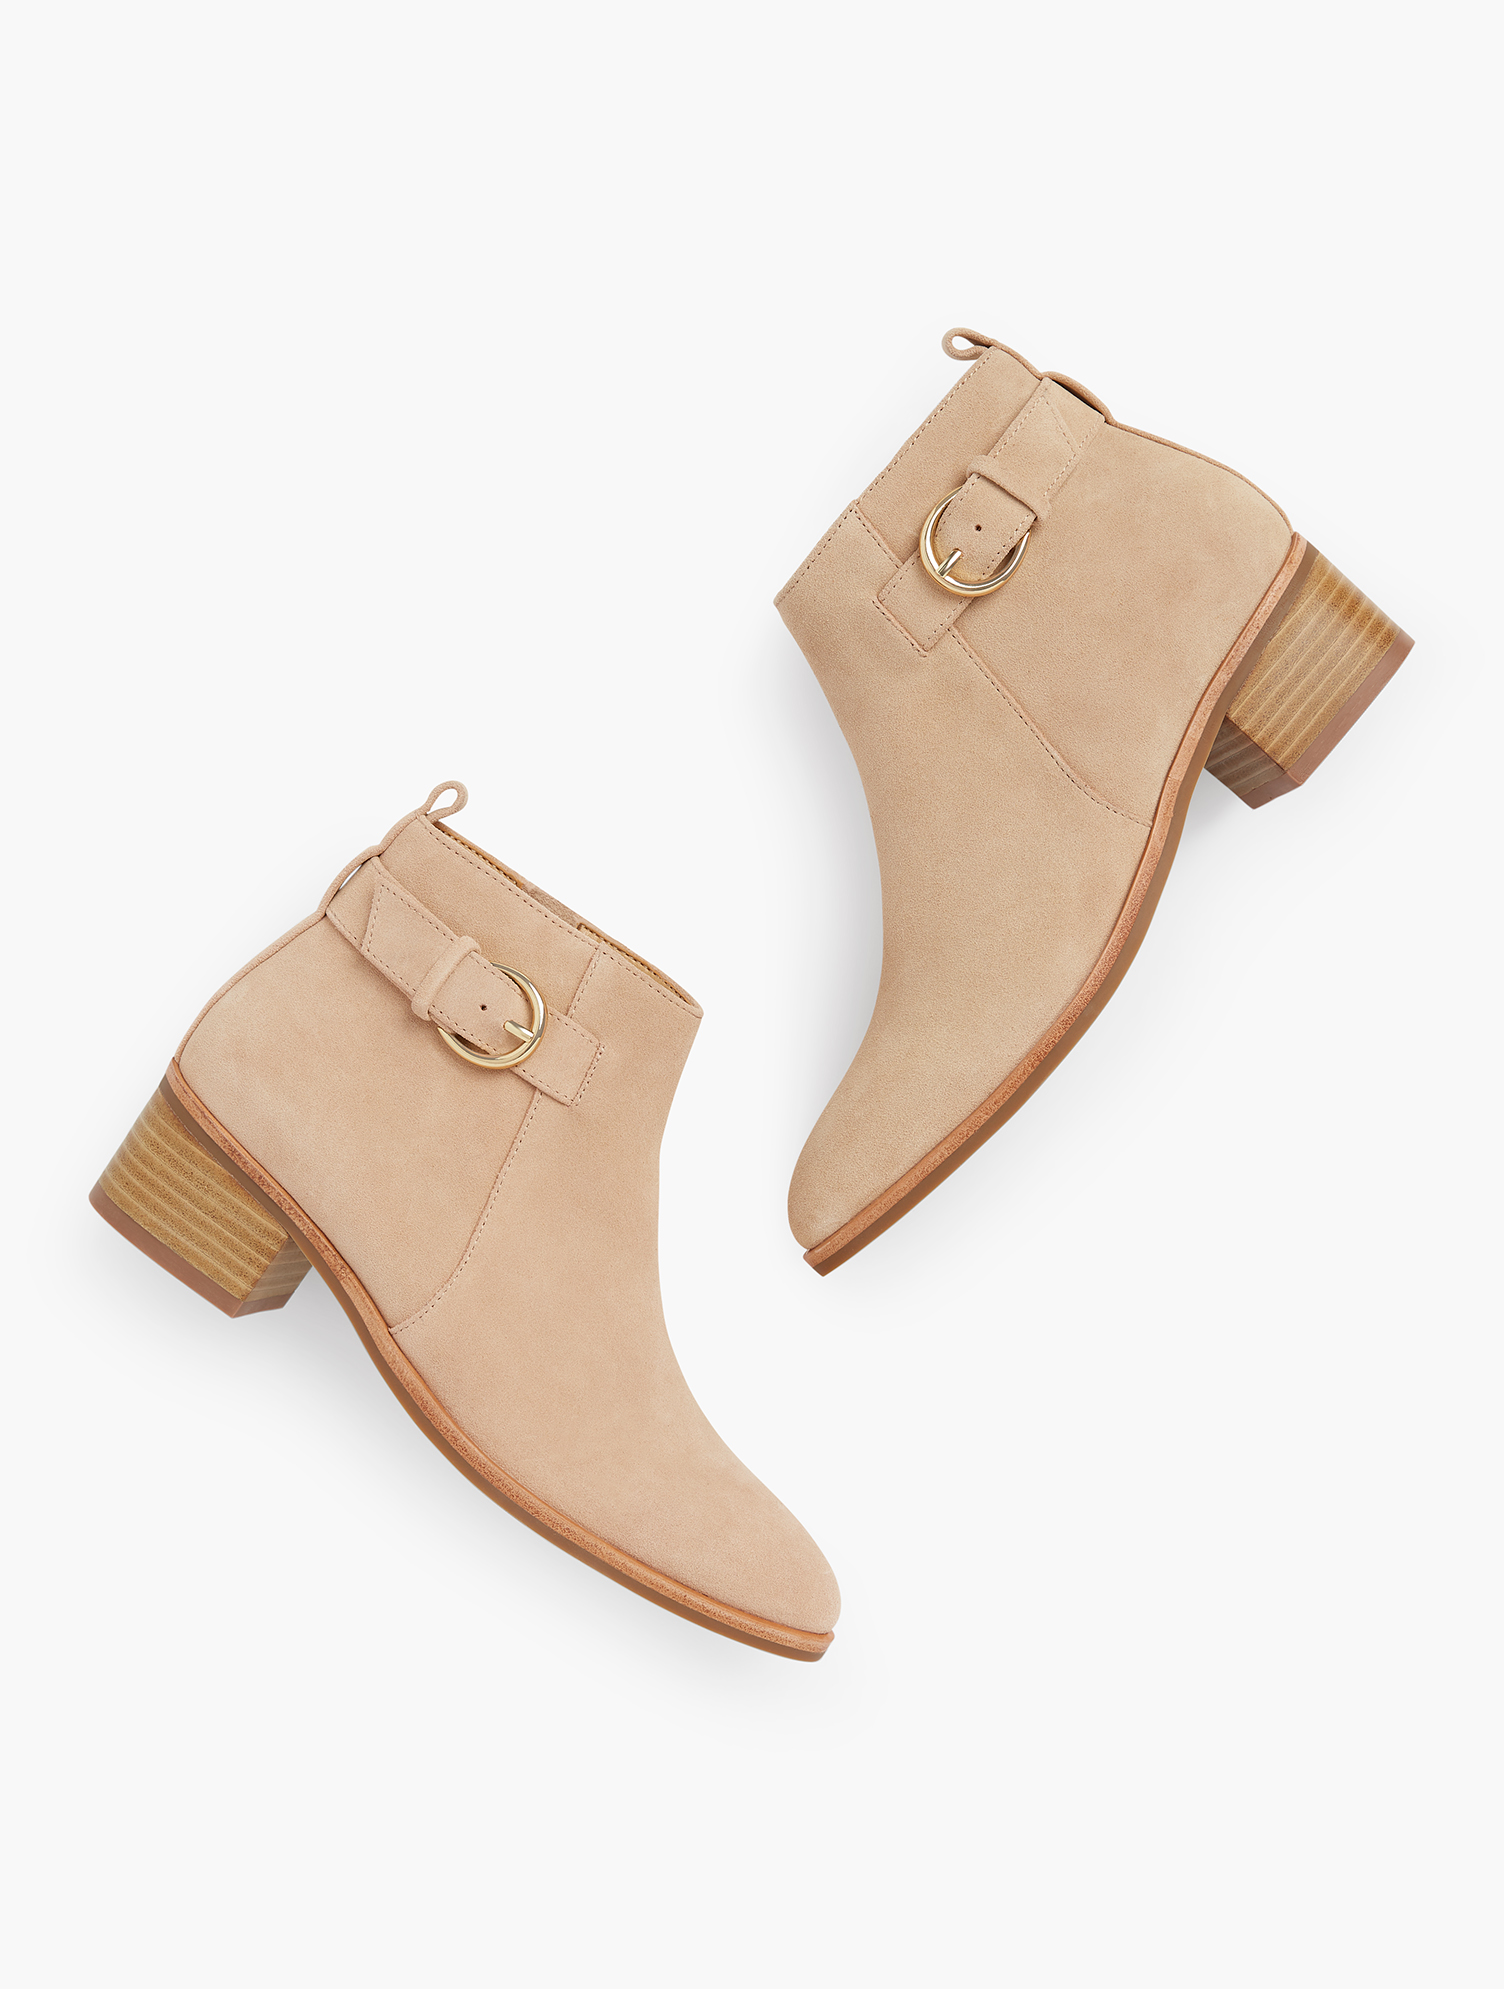 An ultra-low suede bootie perfect for ankle pants and beyond. Accessorized with a shiny gold buckle. features 1 1/2 inches Heel Memory Foam Footbed Imported Material: 100% Leather Via Buckle Booties - Suede - Rattan - 11M Talbots